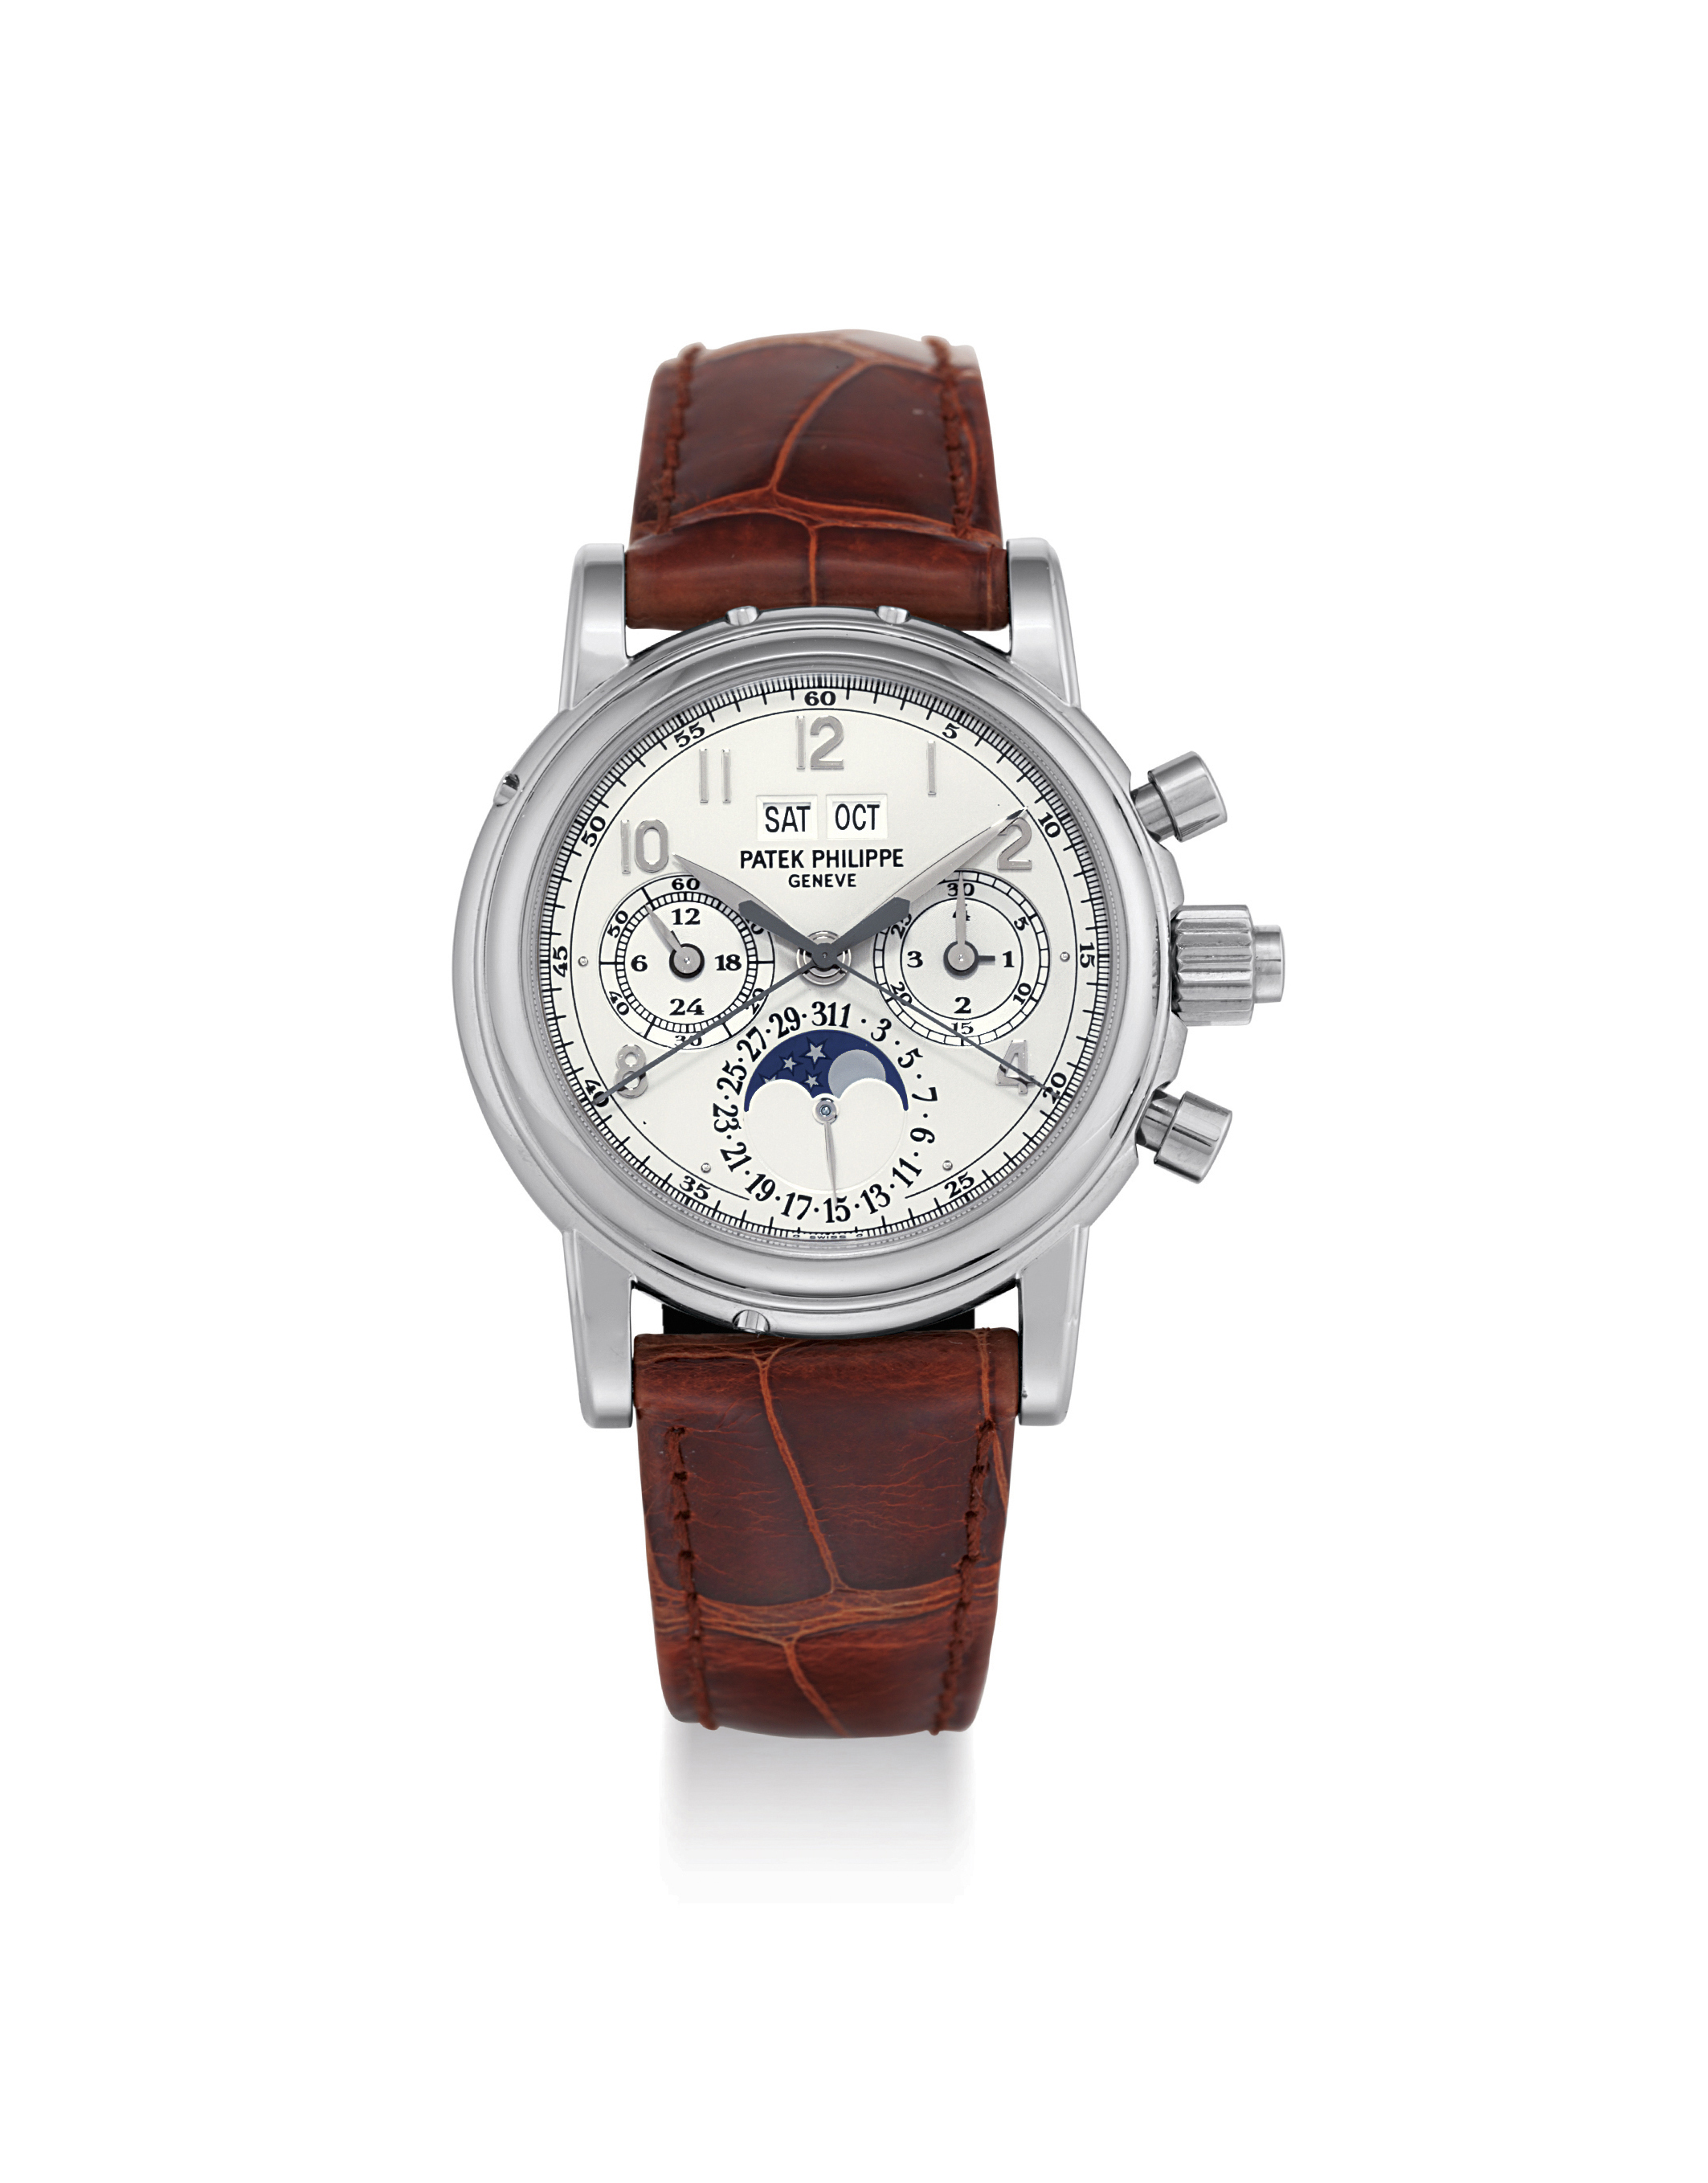 PATEK PHILIPPE. A FINE AND RARE 18K WHITE GOLD PERPETUAL CALENDAR SPLIT SECONDS CHRONOGRAPH WRISTWATCH WITH MOON PHASES, LEAP YEAR INDICATION, ORIGINAL CERTIFICATE, ADDITIONAL CASE BACK AND BOX